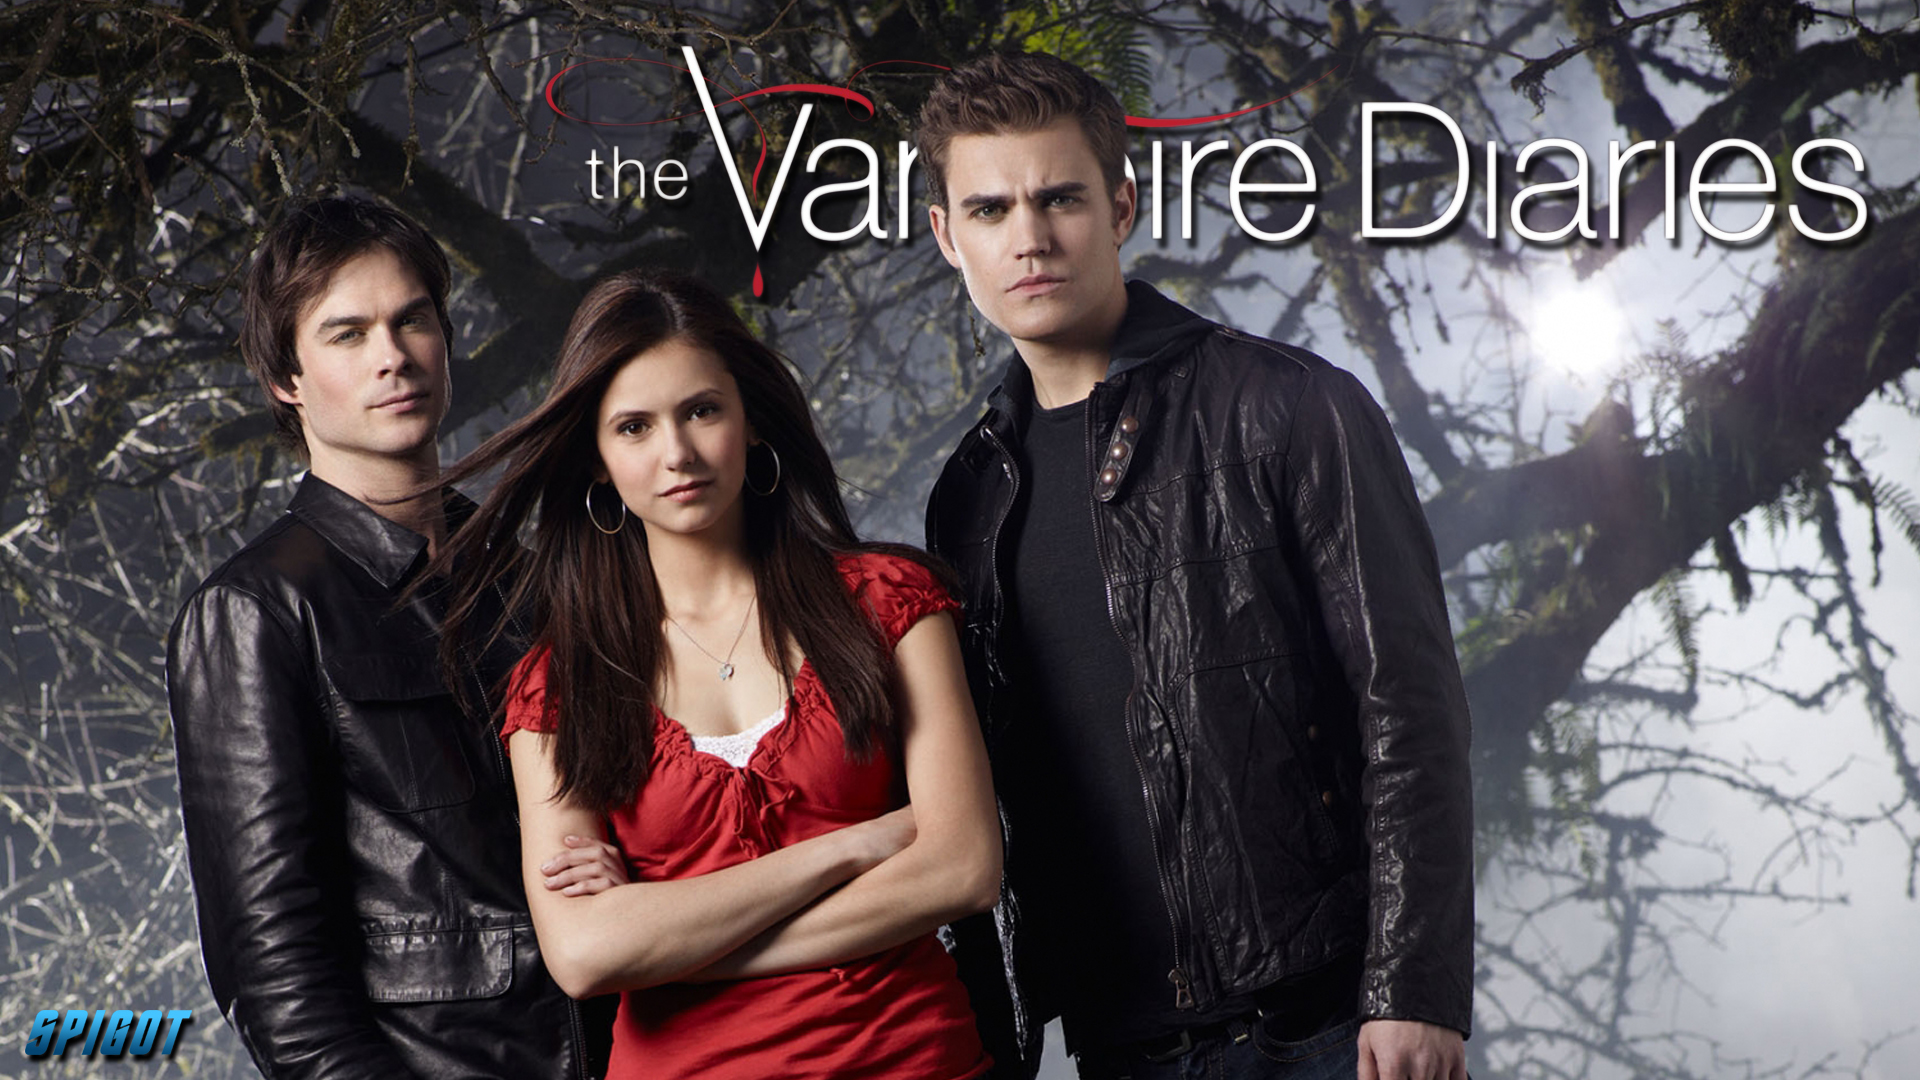 Vampire Diaries Web Series , HD Wallpaper & Backgrounds